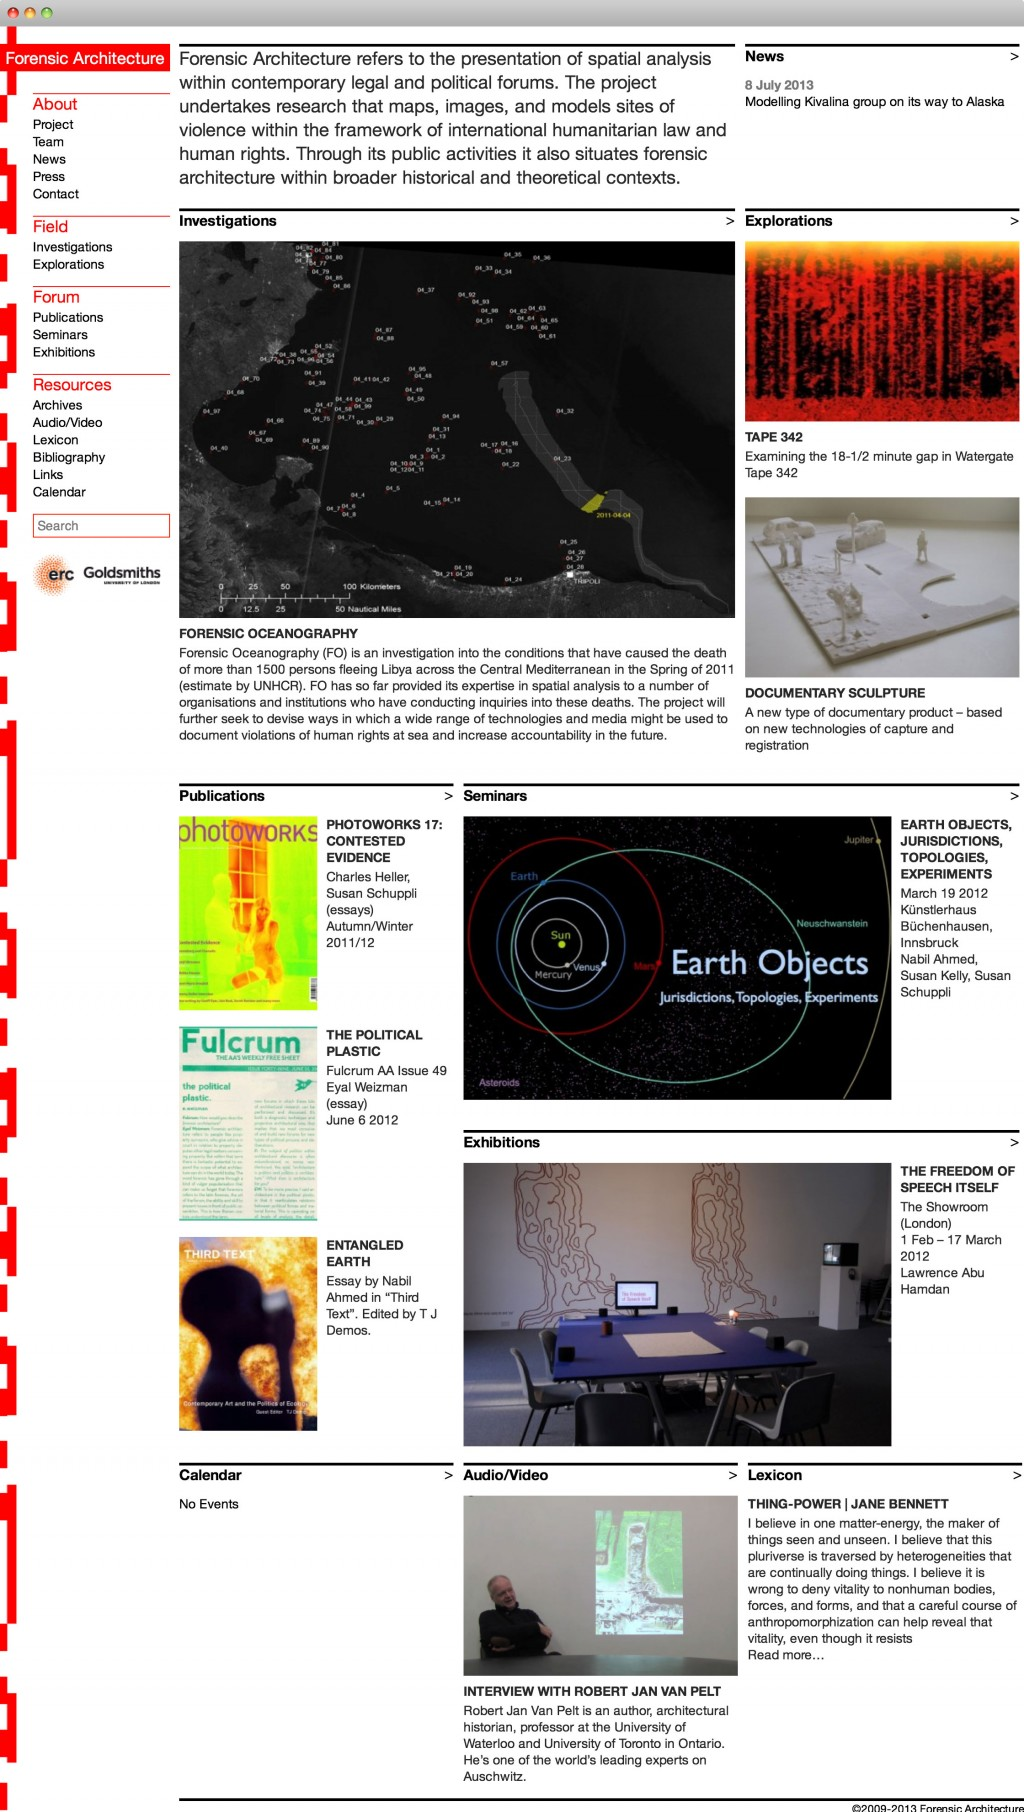 Forensic-Architecture-ERC-funded-research-project-based-at-the-Centre-for-Research-Architecture-Department-of-Visual-Cultures-Goldsmiths-University-of-London